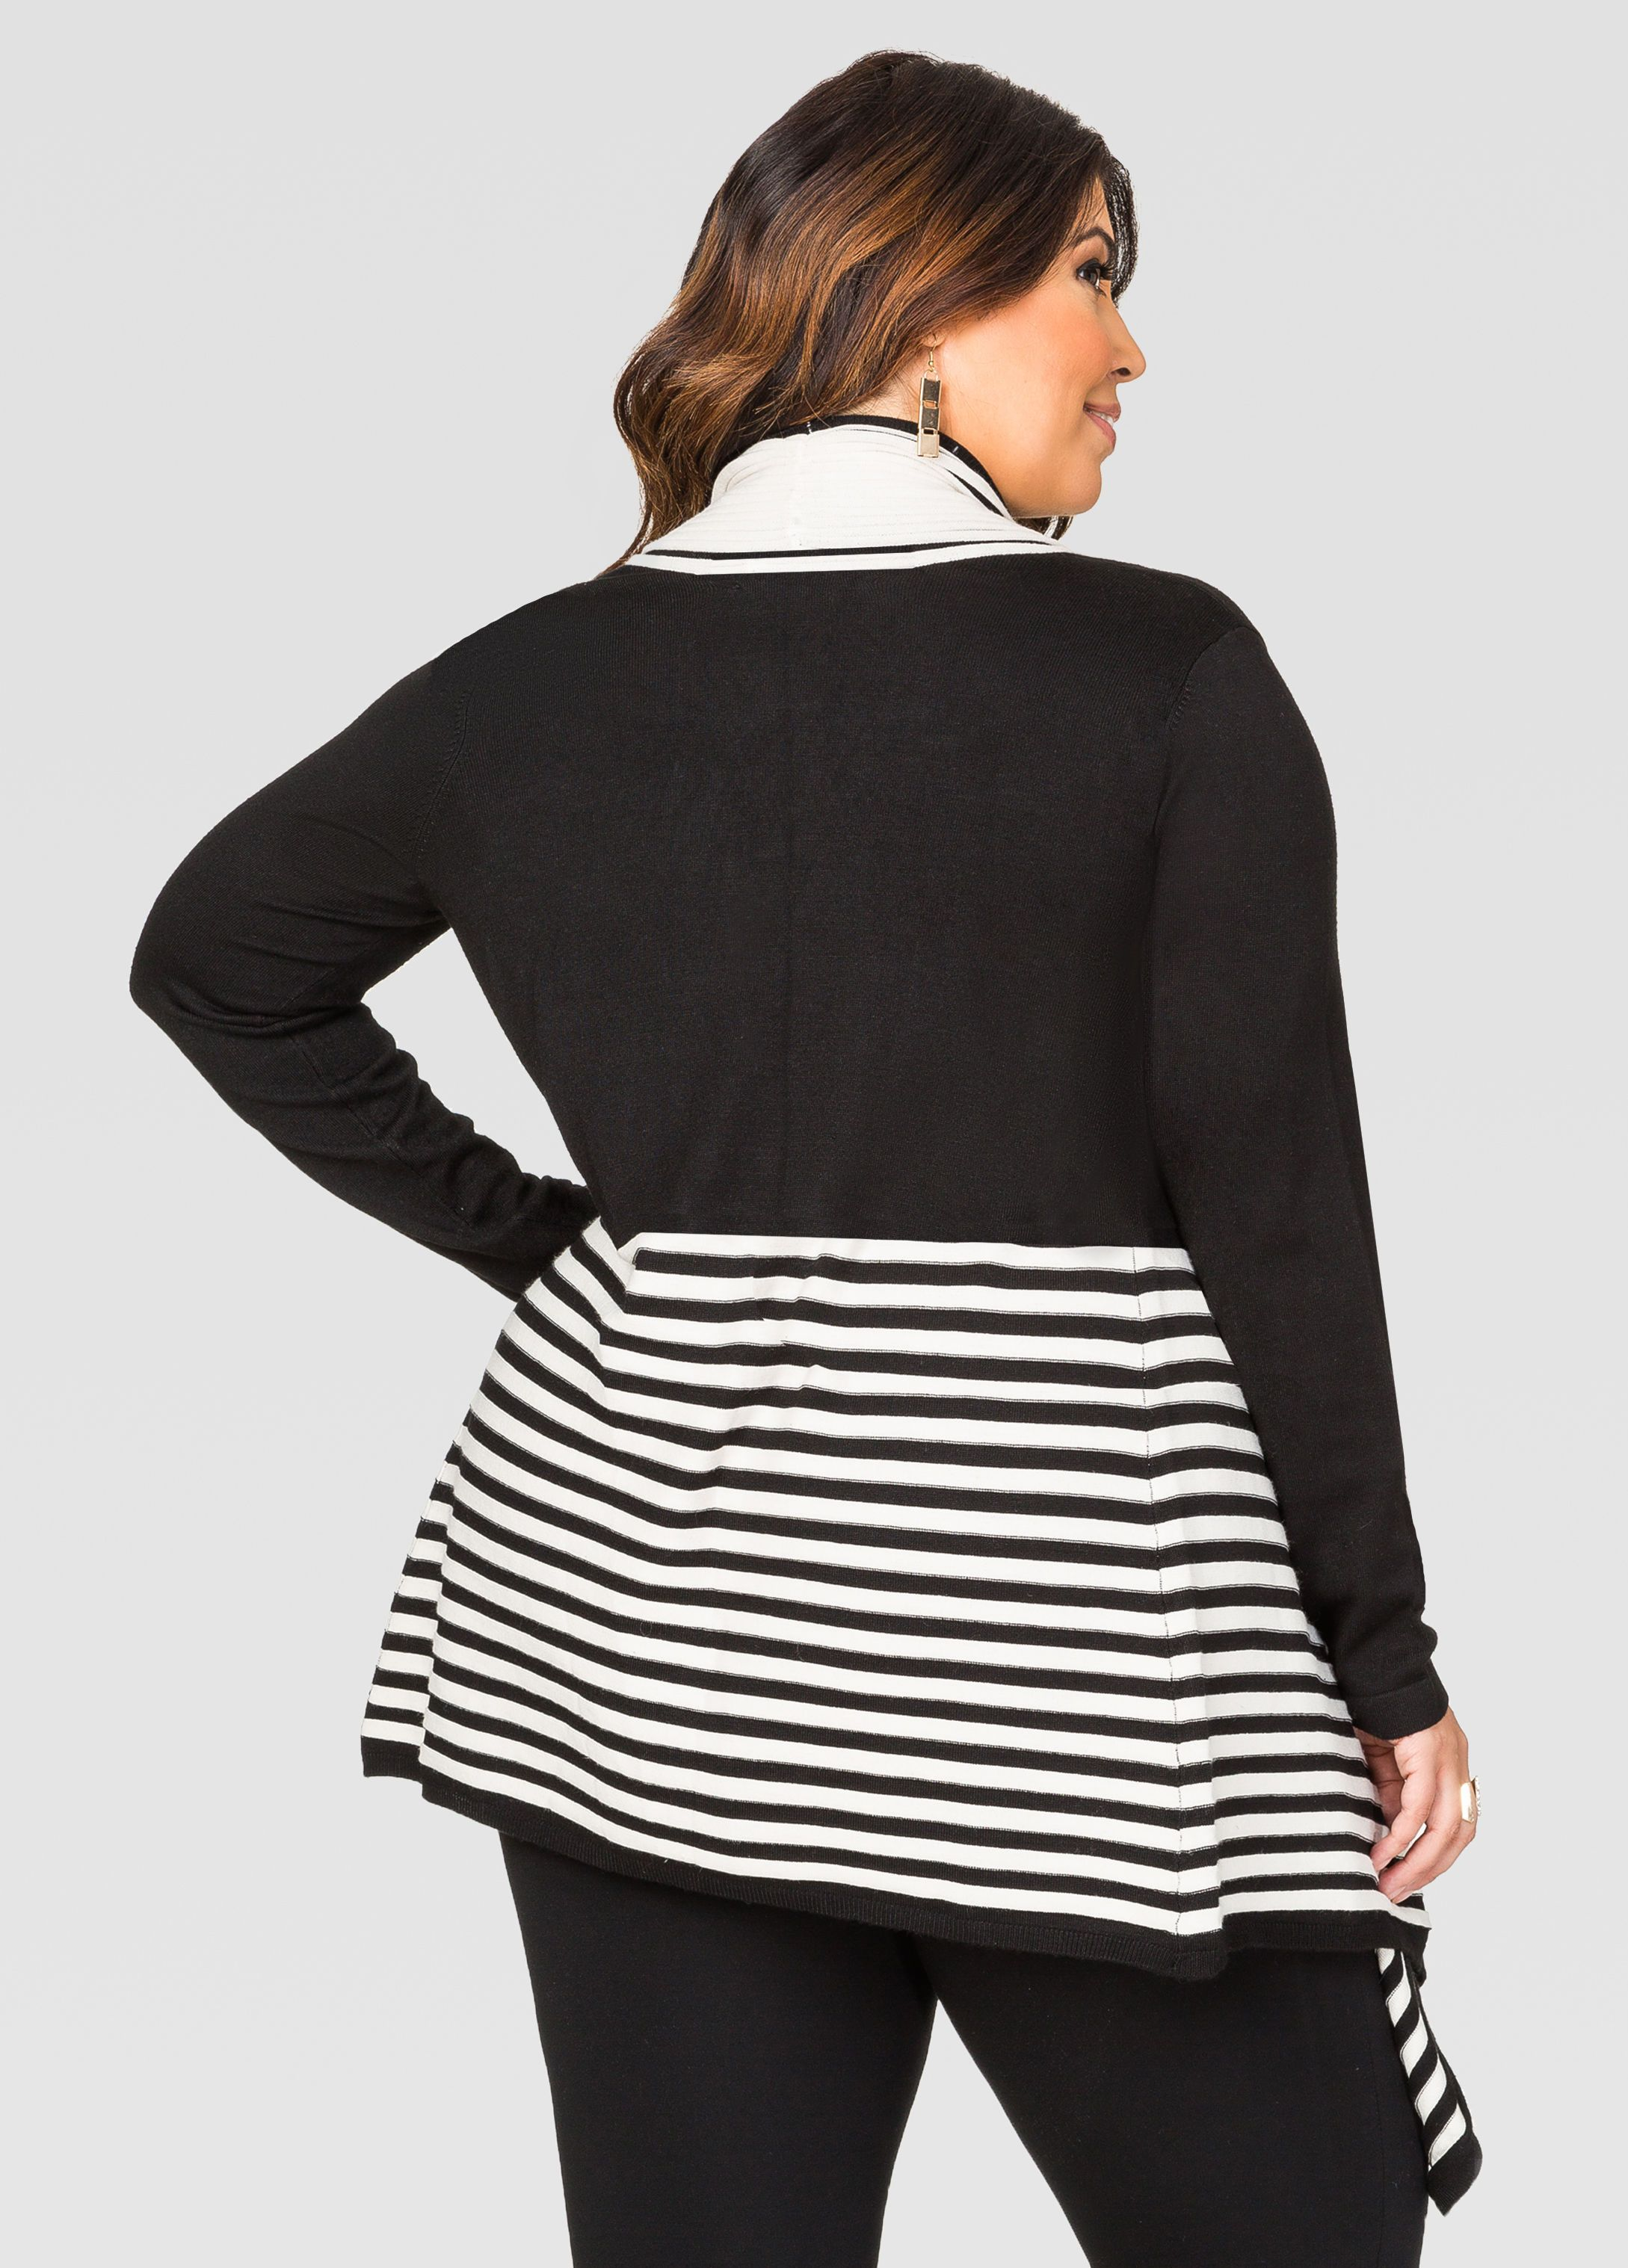 Striped Open Front Cardigan - Ashley Stewart | Jessica Milagros ...